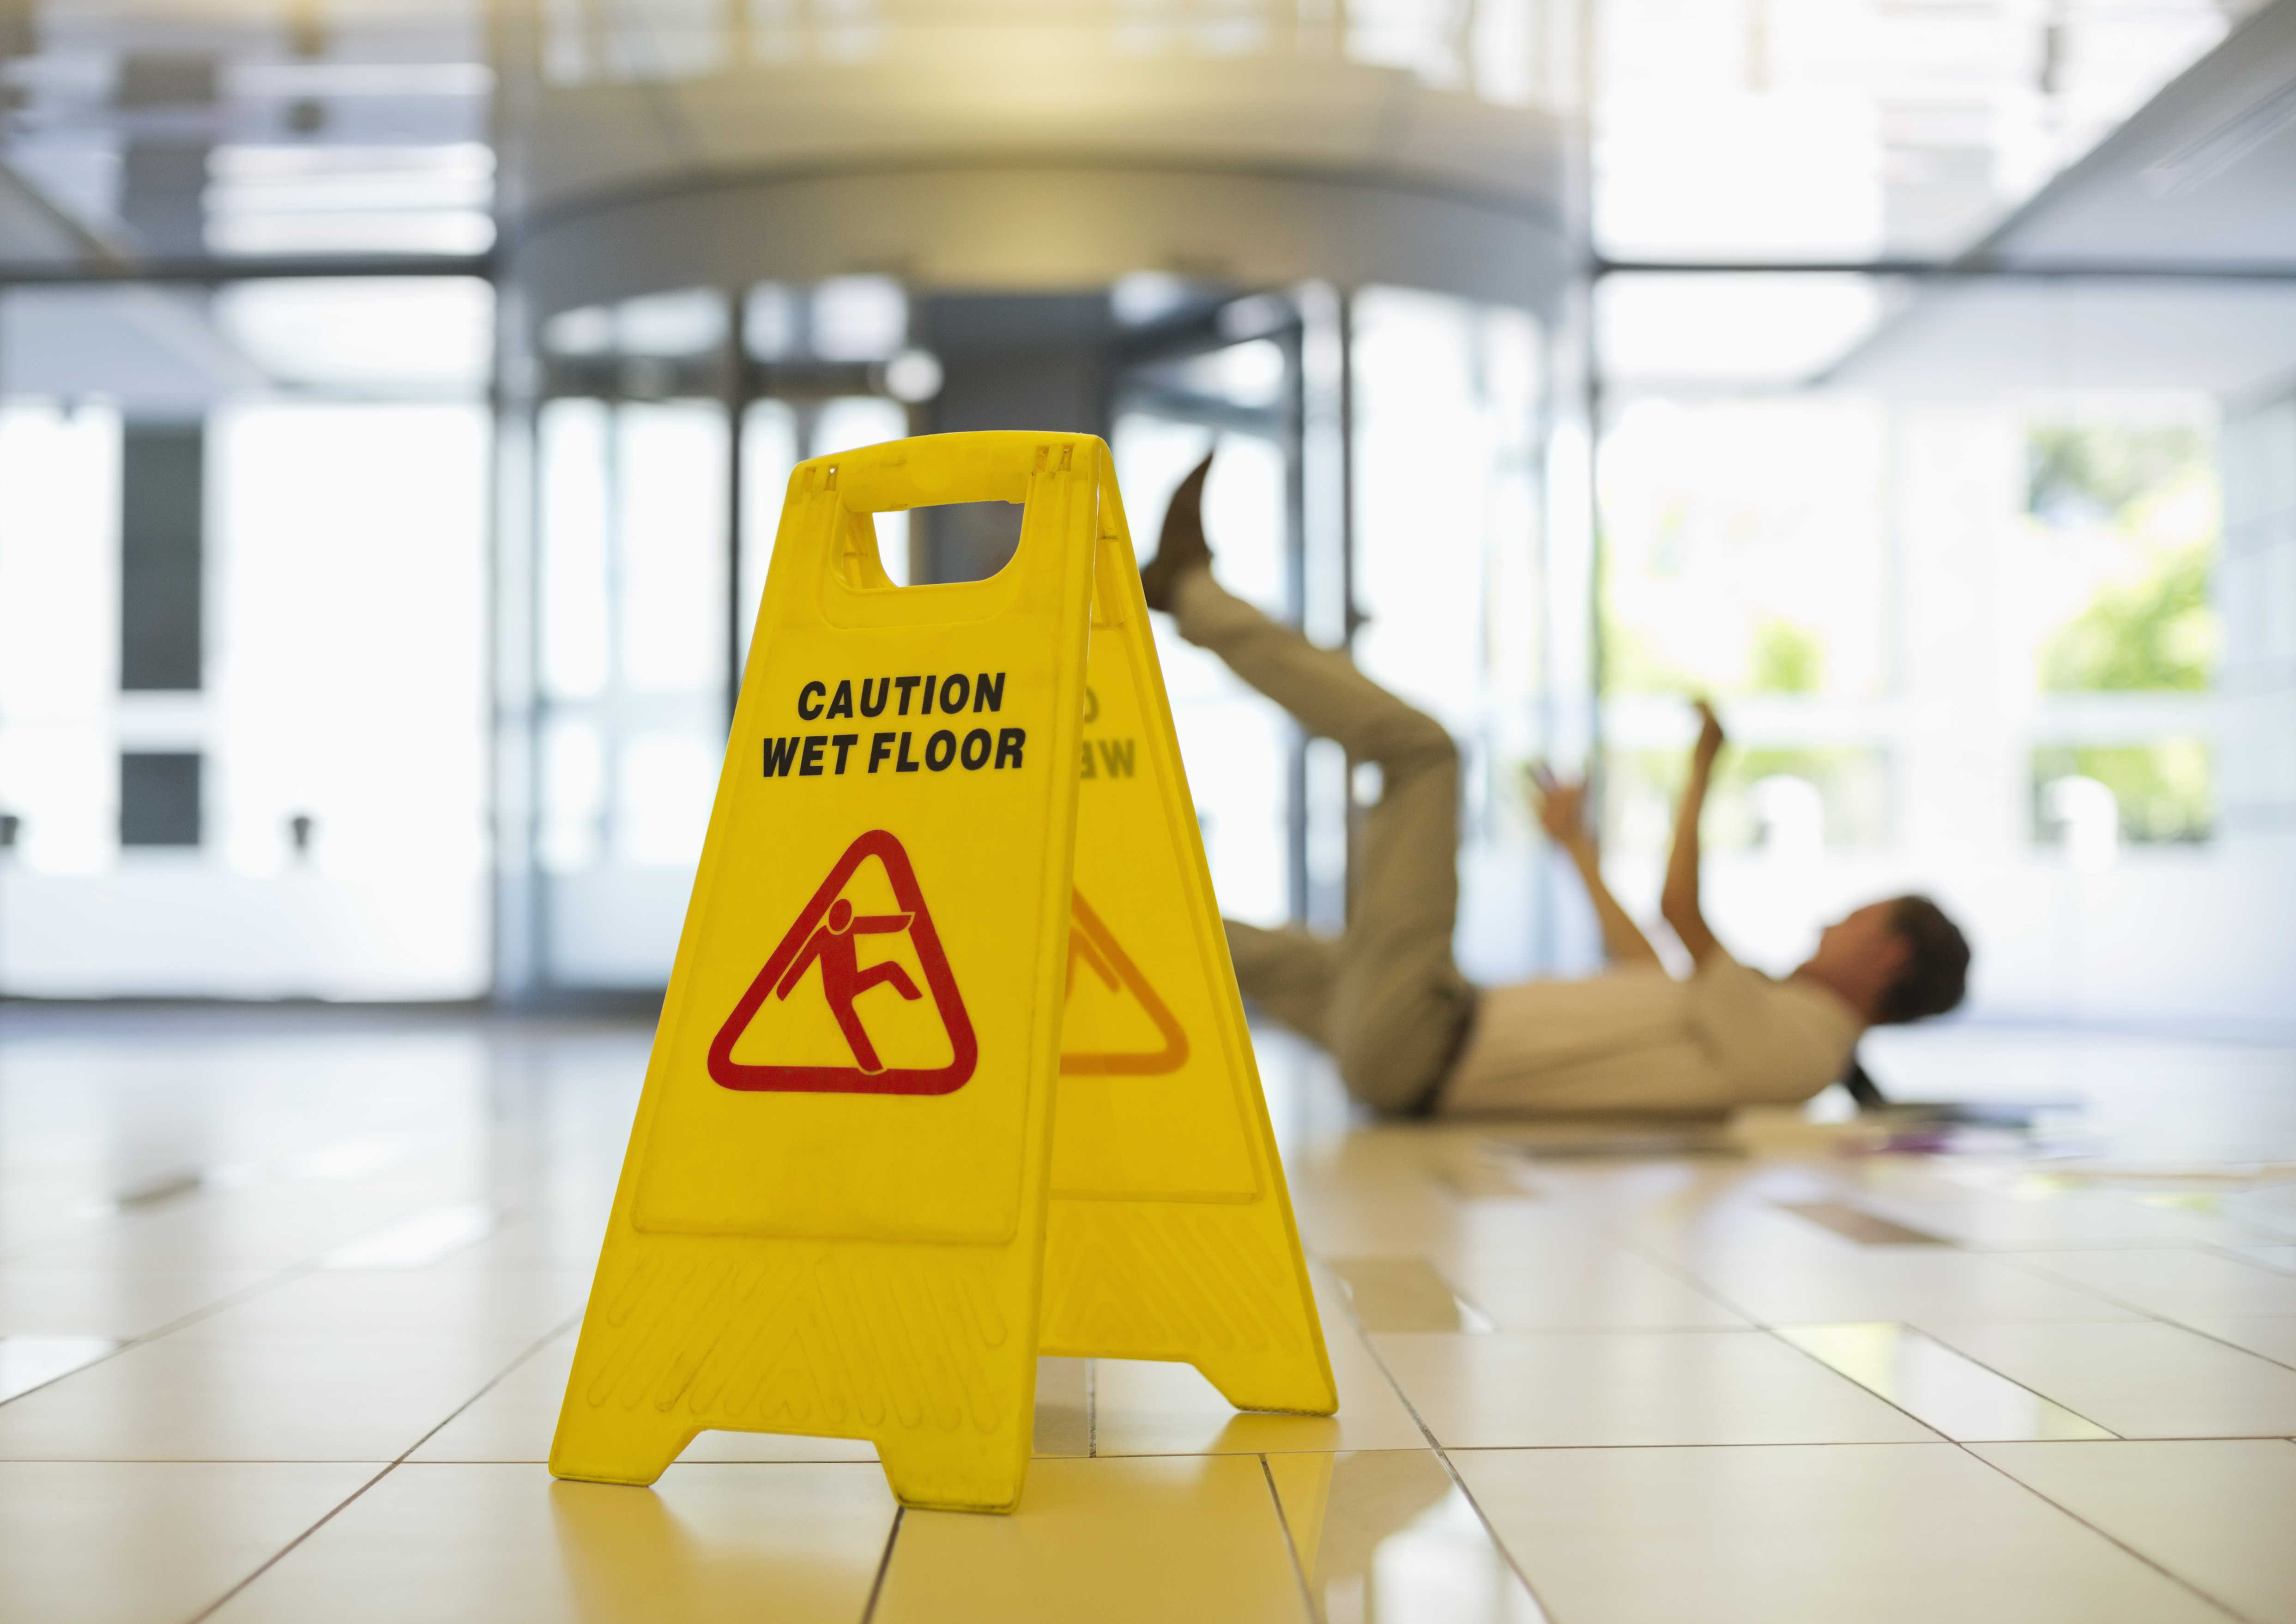 How to Find a Slip-and-Fall Attorney